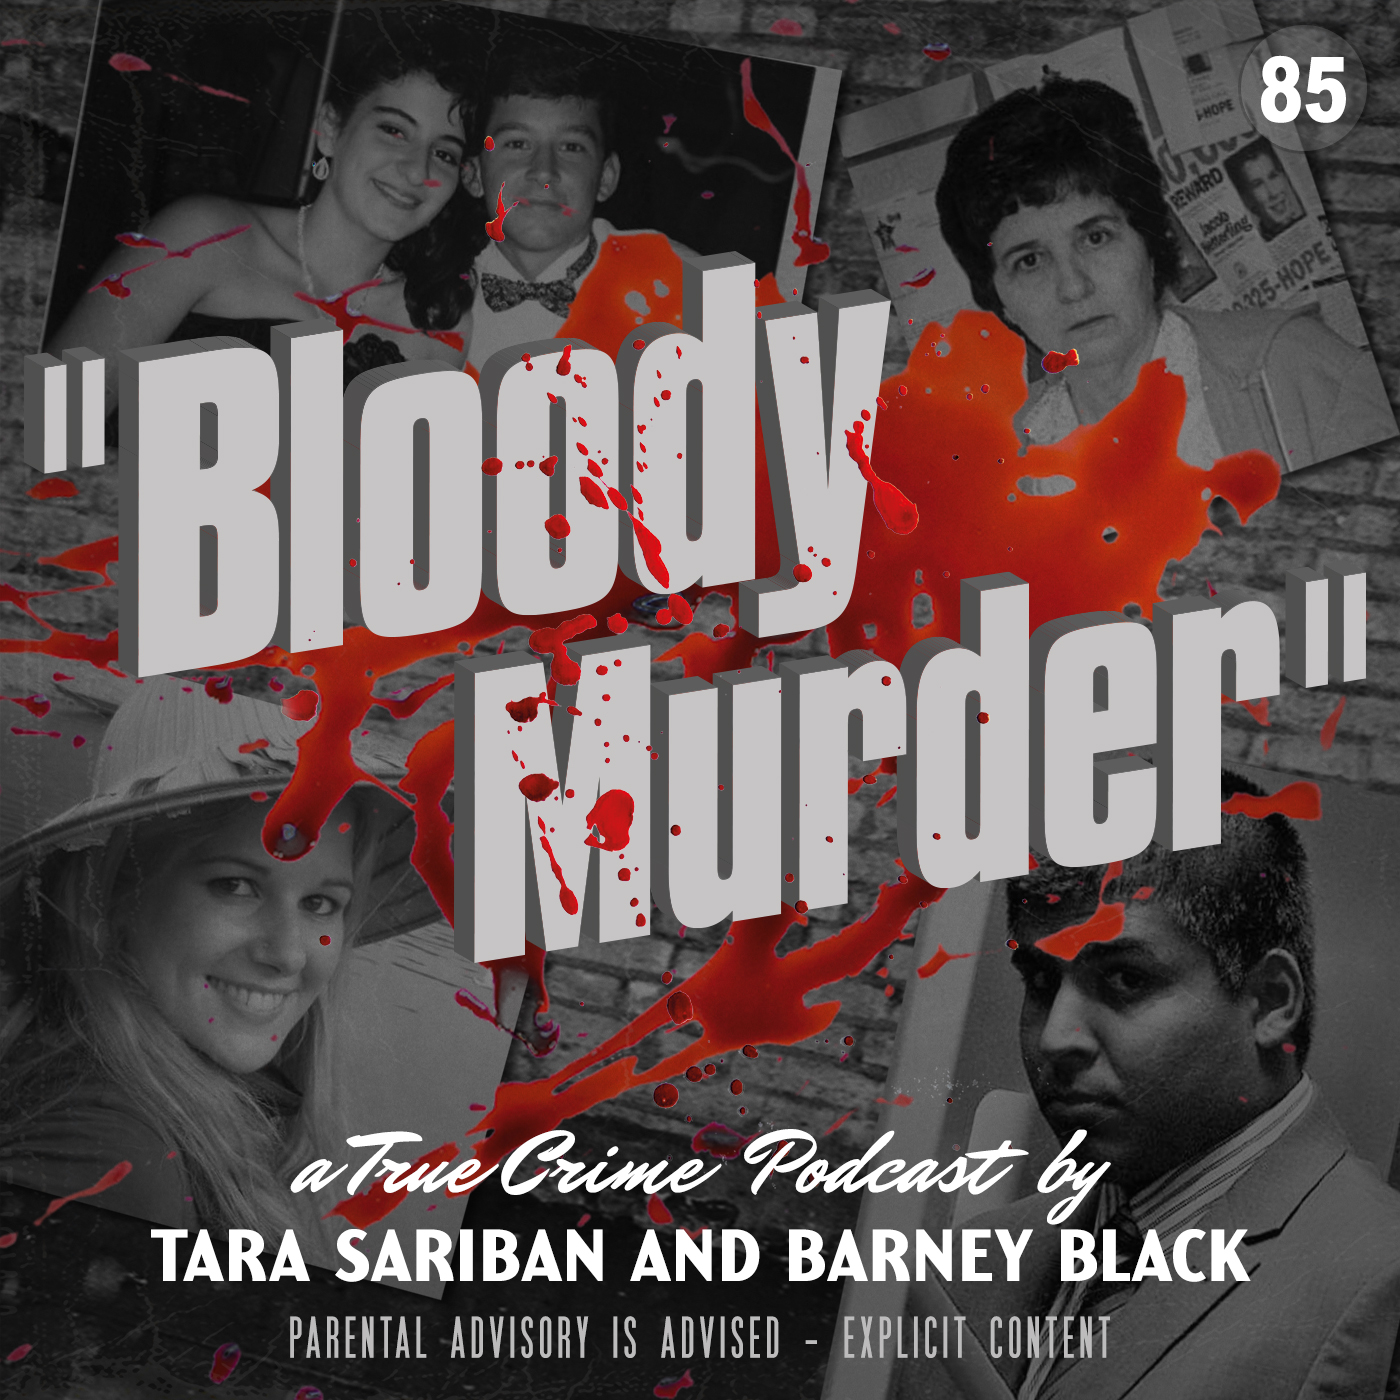 85 - The Absurdly Motivated Murder of Joey Fisher and The Stalking Murder of Adriana Donato